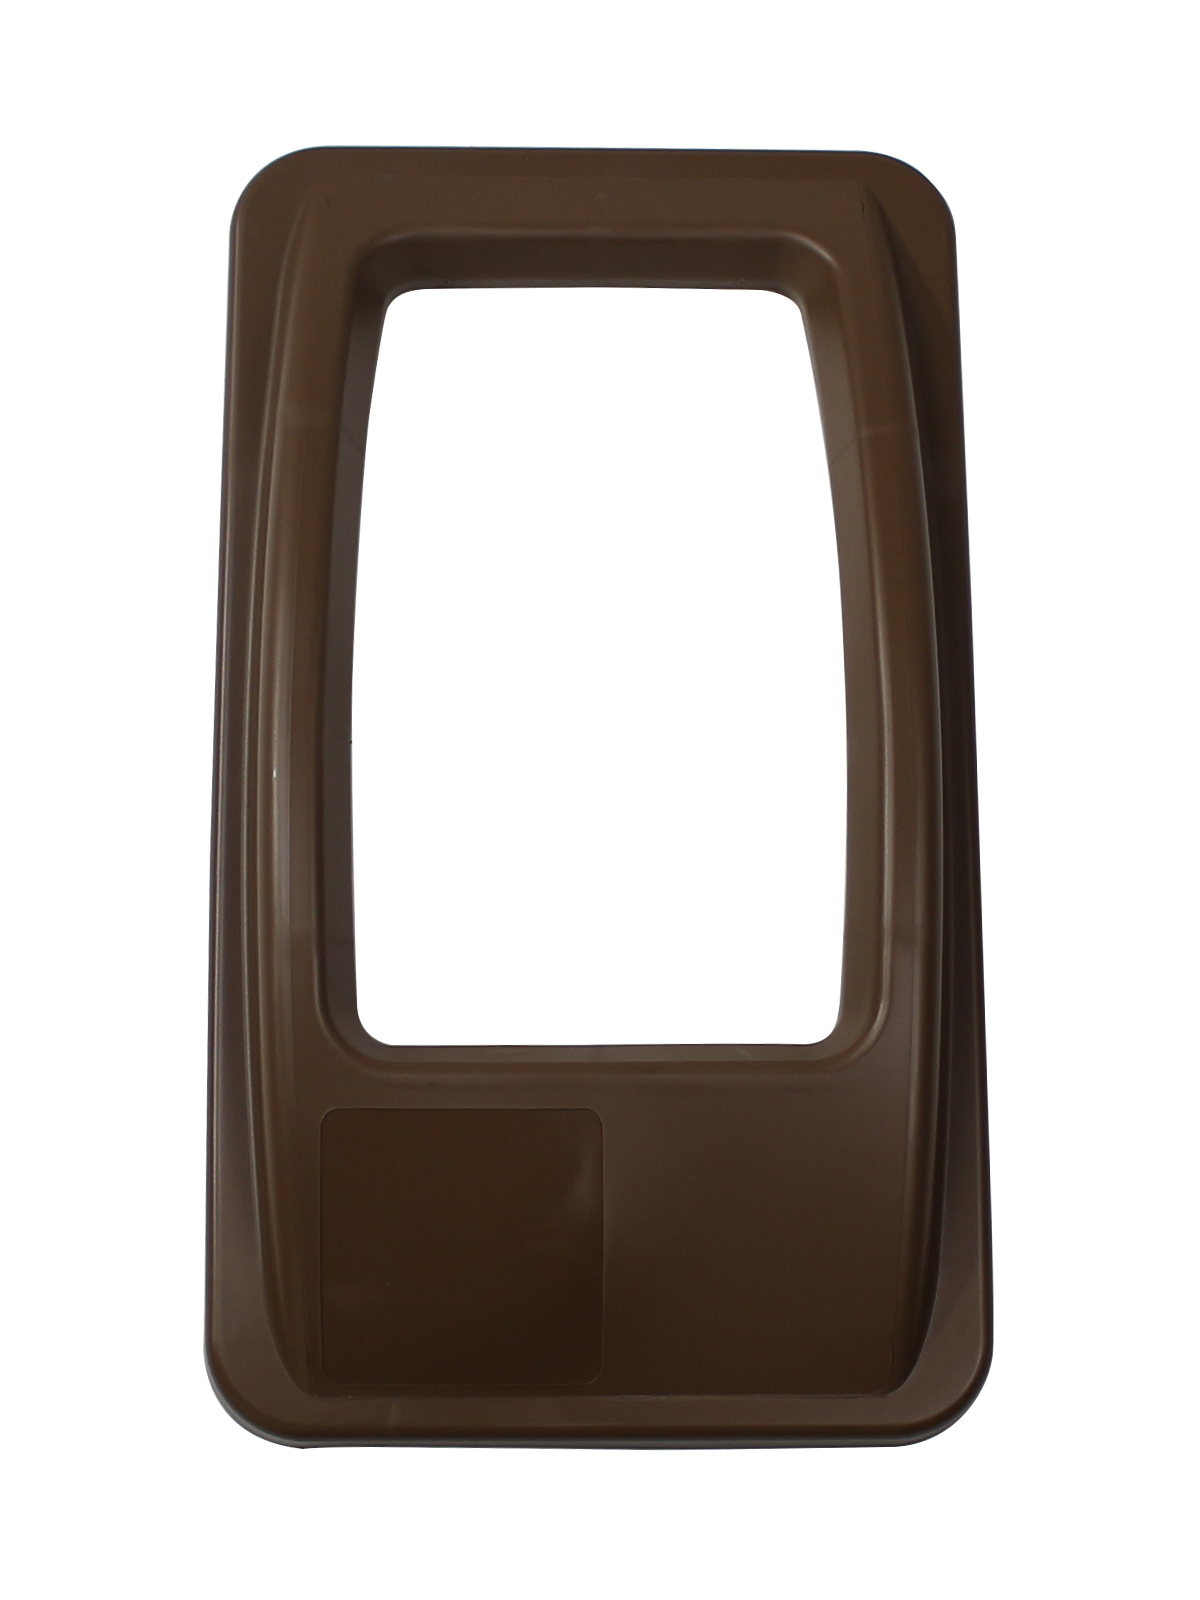 WASTE WATCHER - Single - Lid - Full - Brown